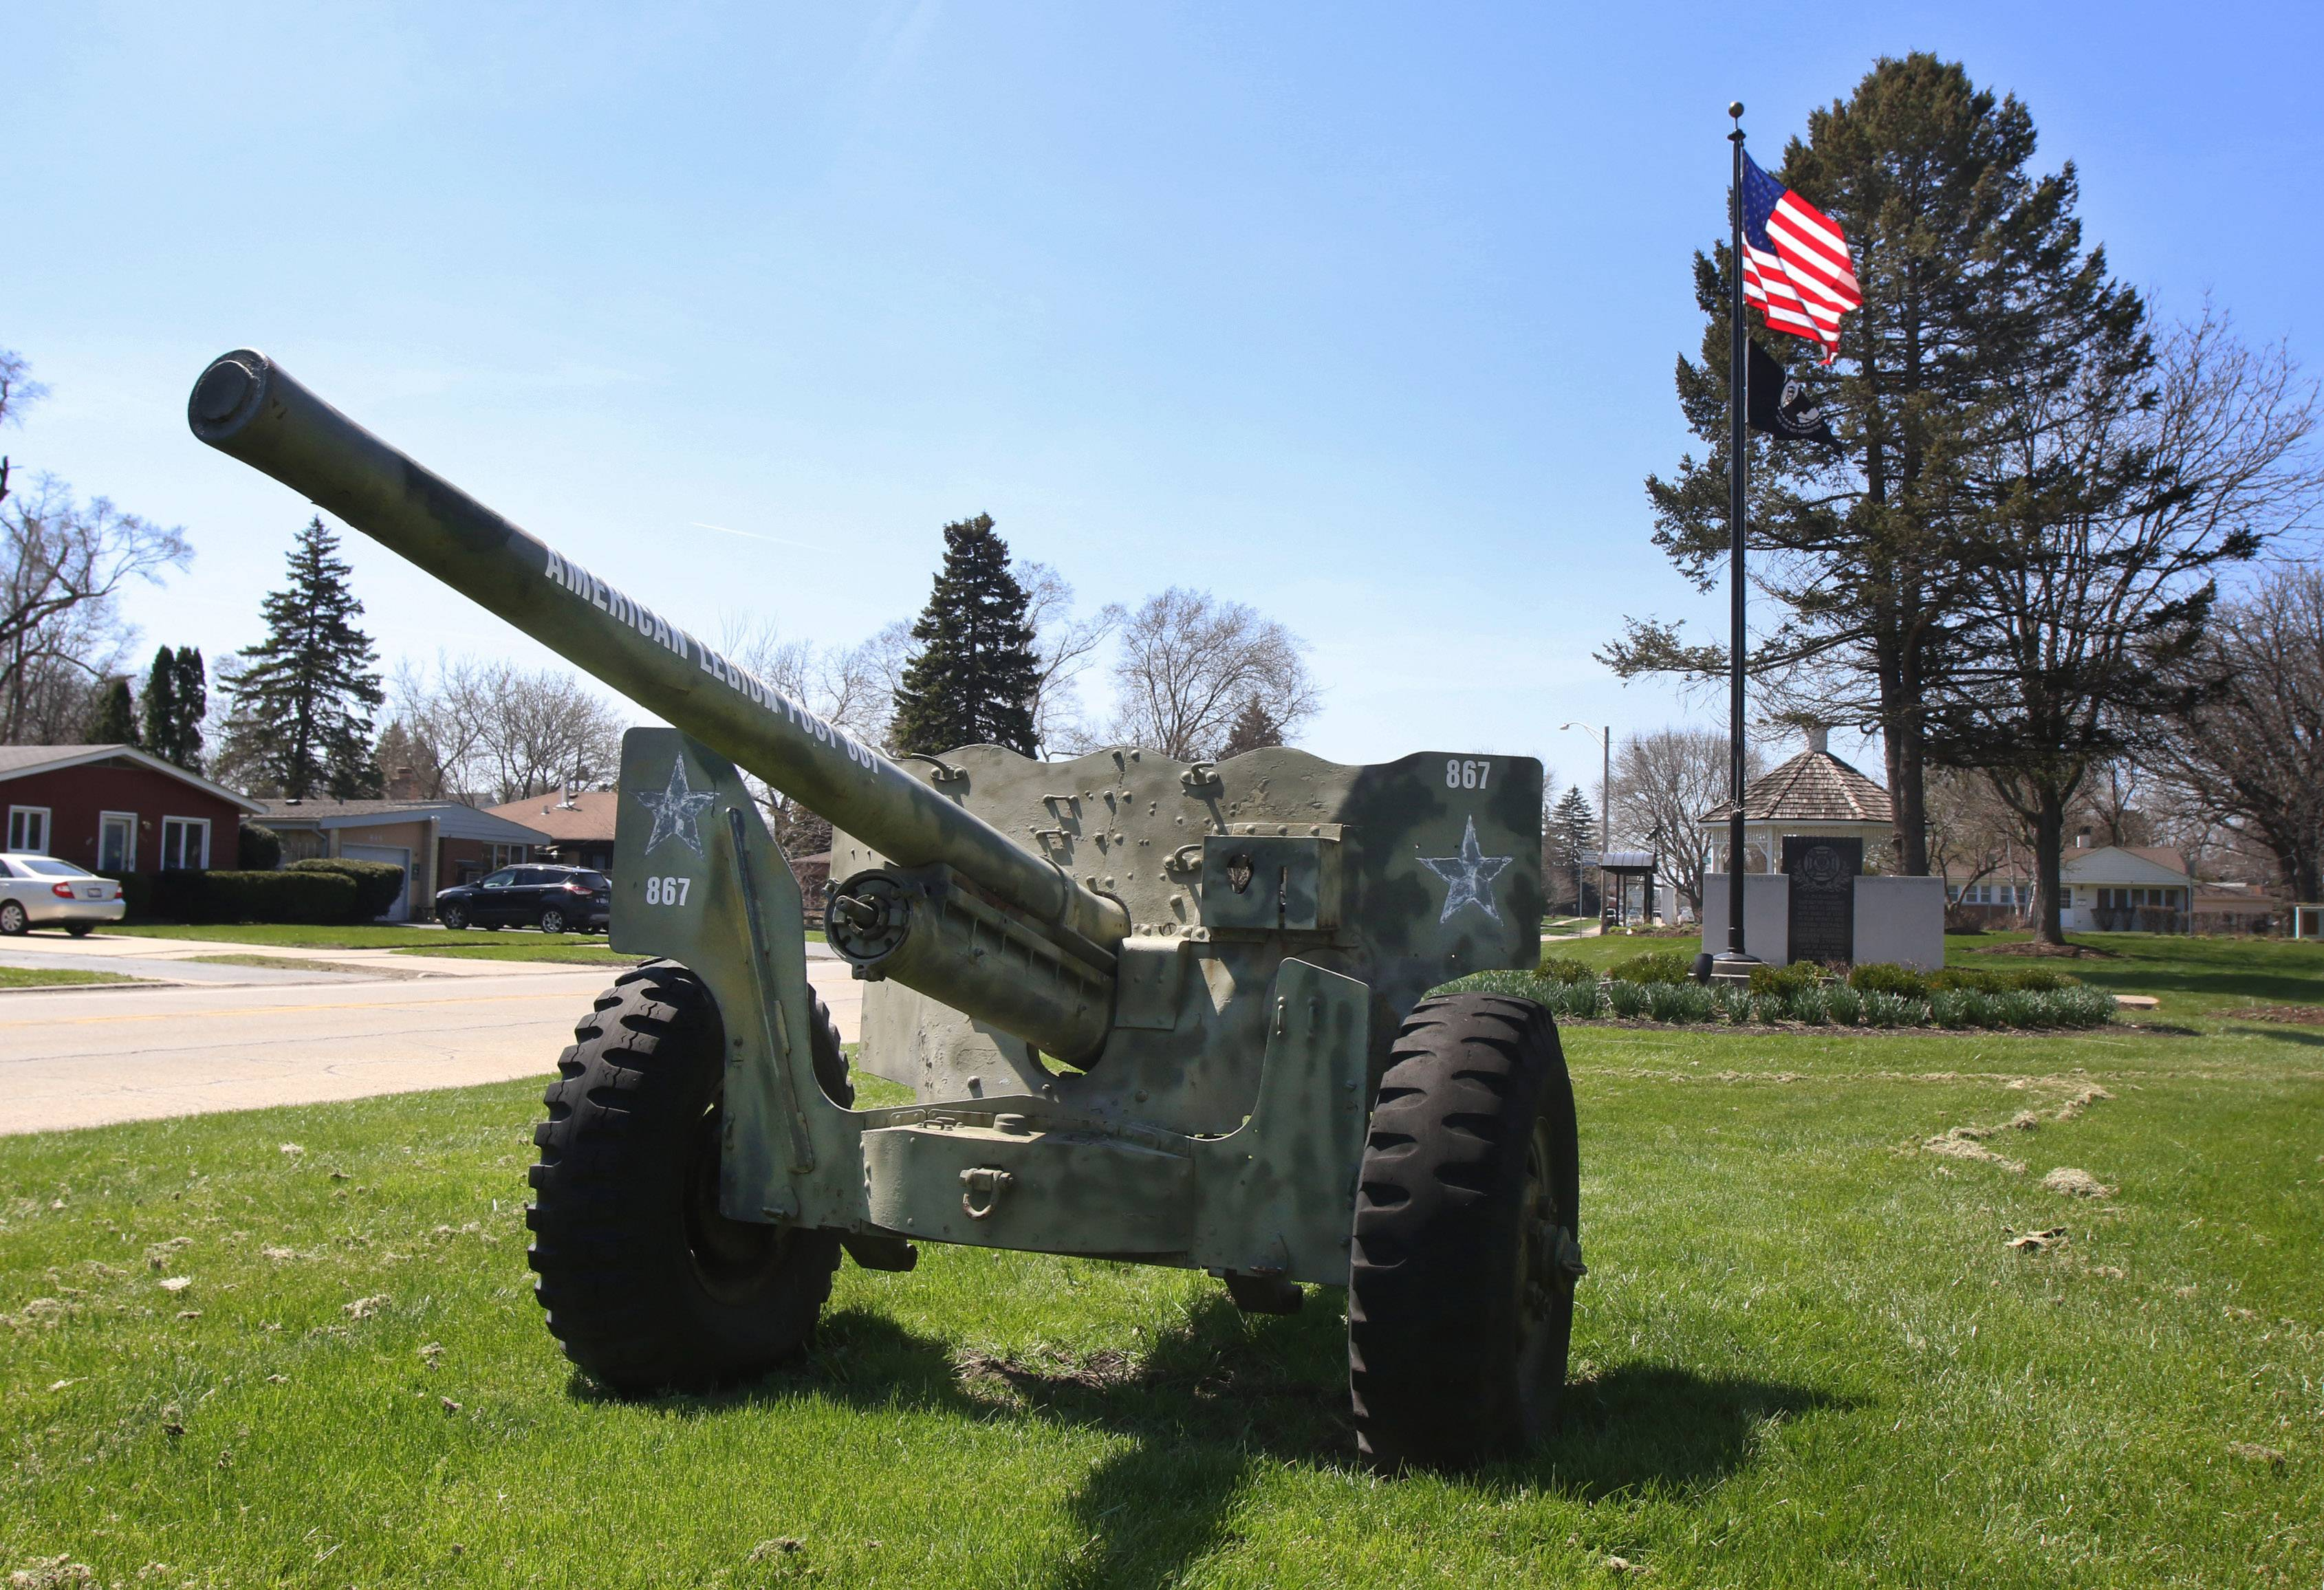 Mundelein officials say it's time to update military memorial